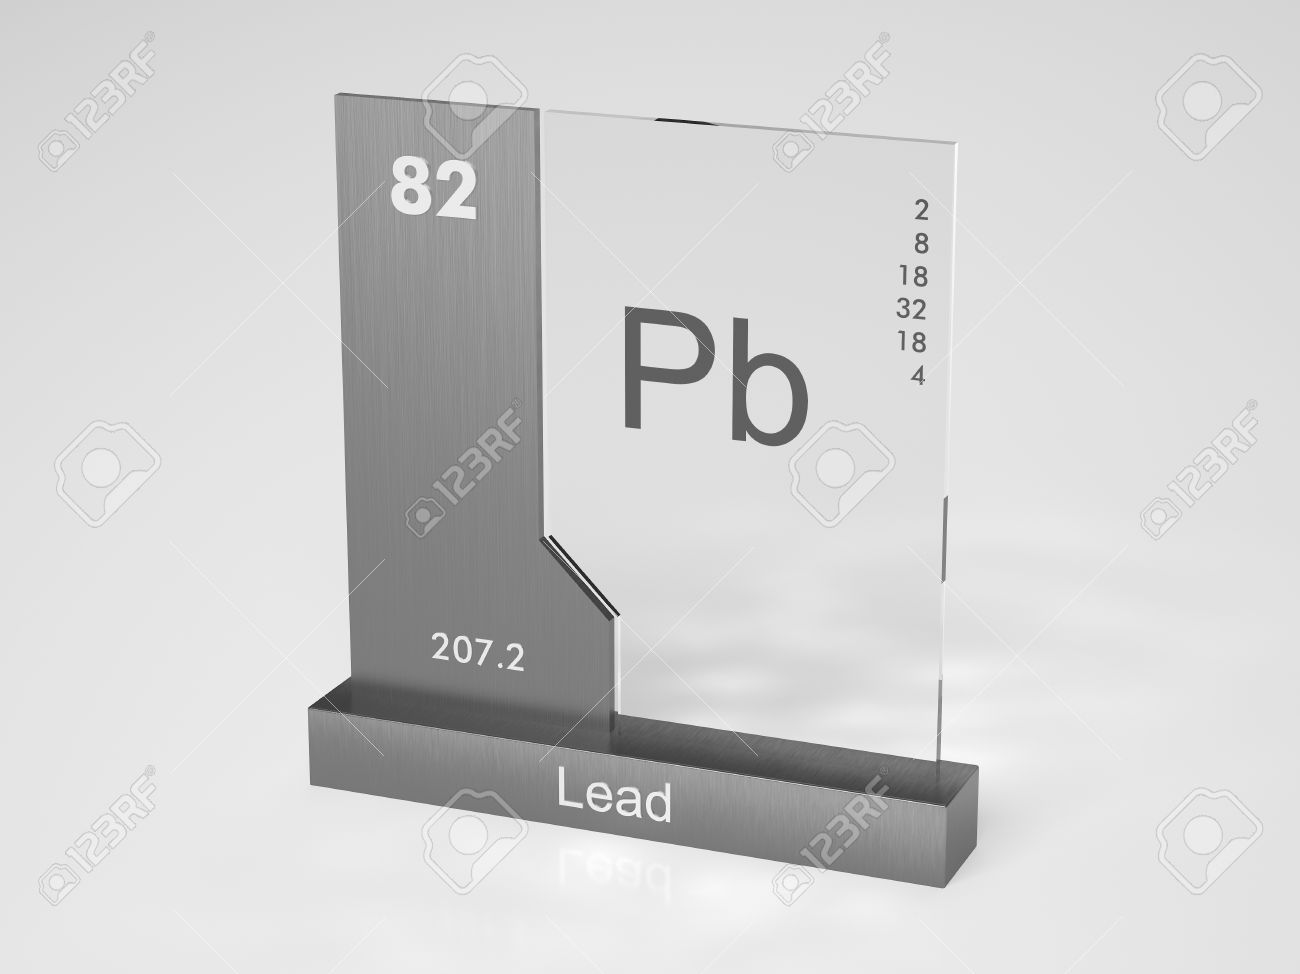 Lead symbol pb chemical element of the periodic table stock lead symbol pb chemical element of the periodic table stock photo 11255903 urtaz Image collections